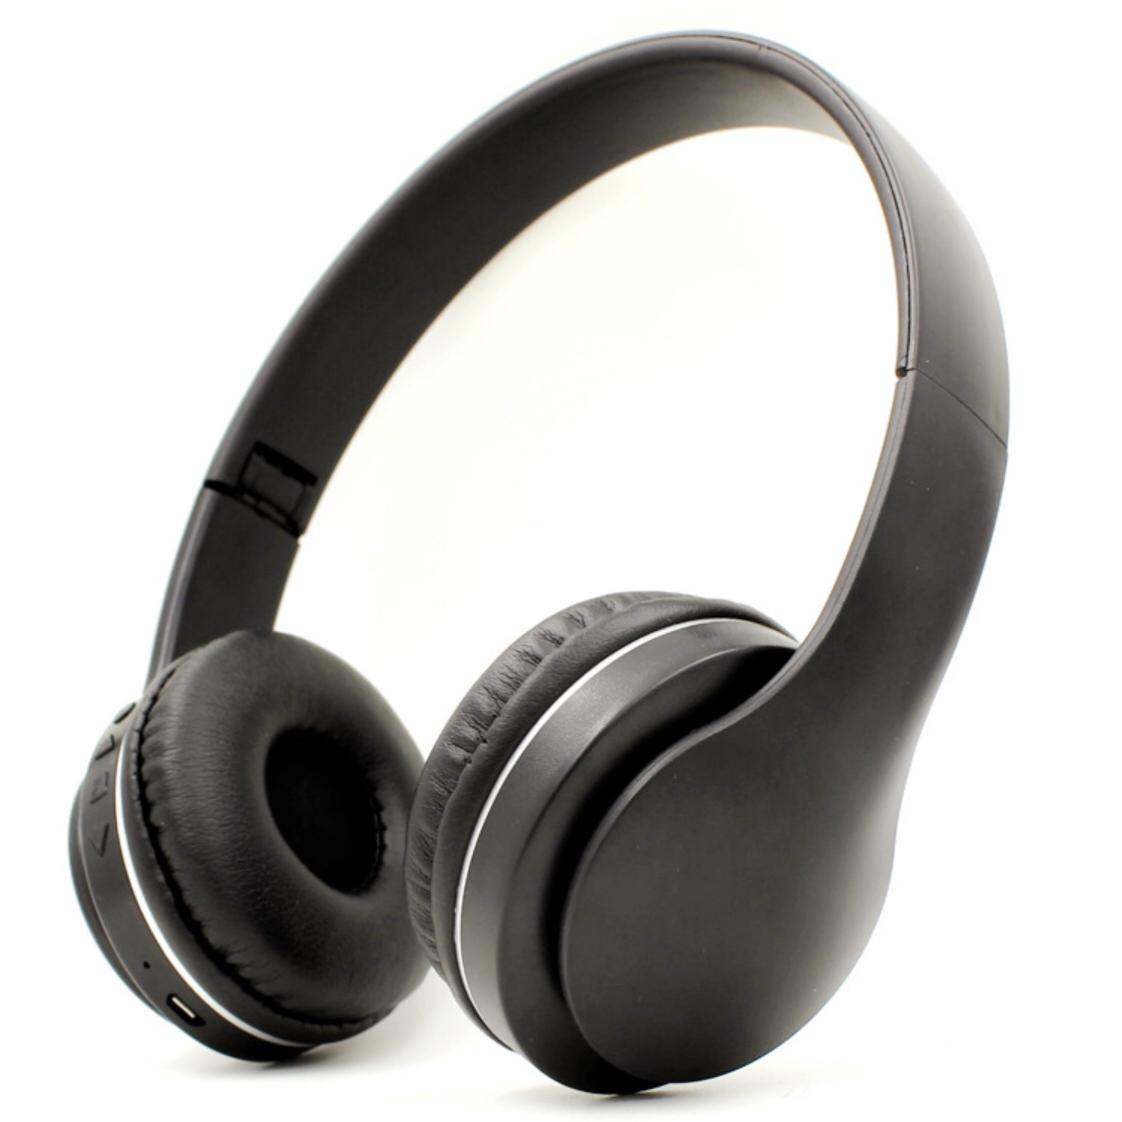 Lunar K2 Bluetooth Wireless Headphone - Rechargeable - Stereo - Mobile Headset - BLACK